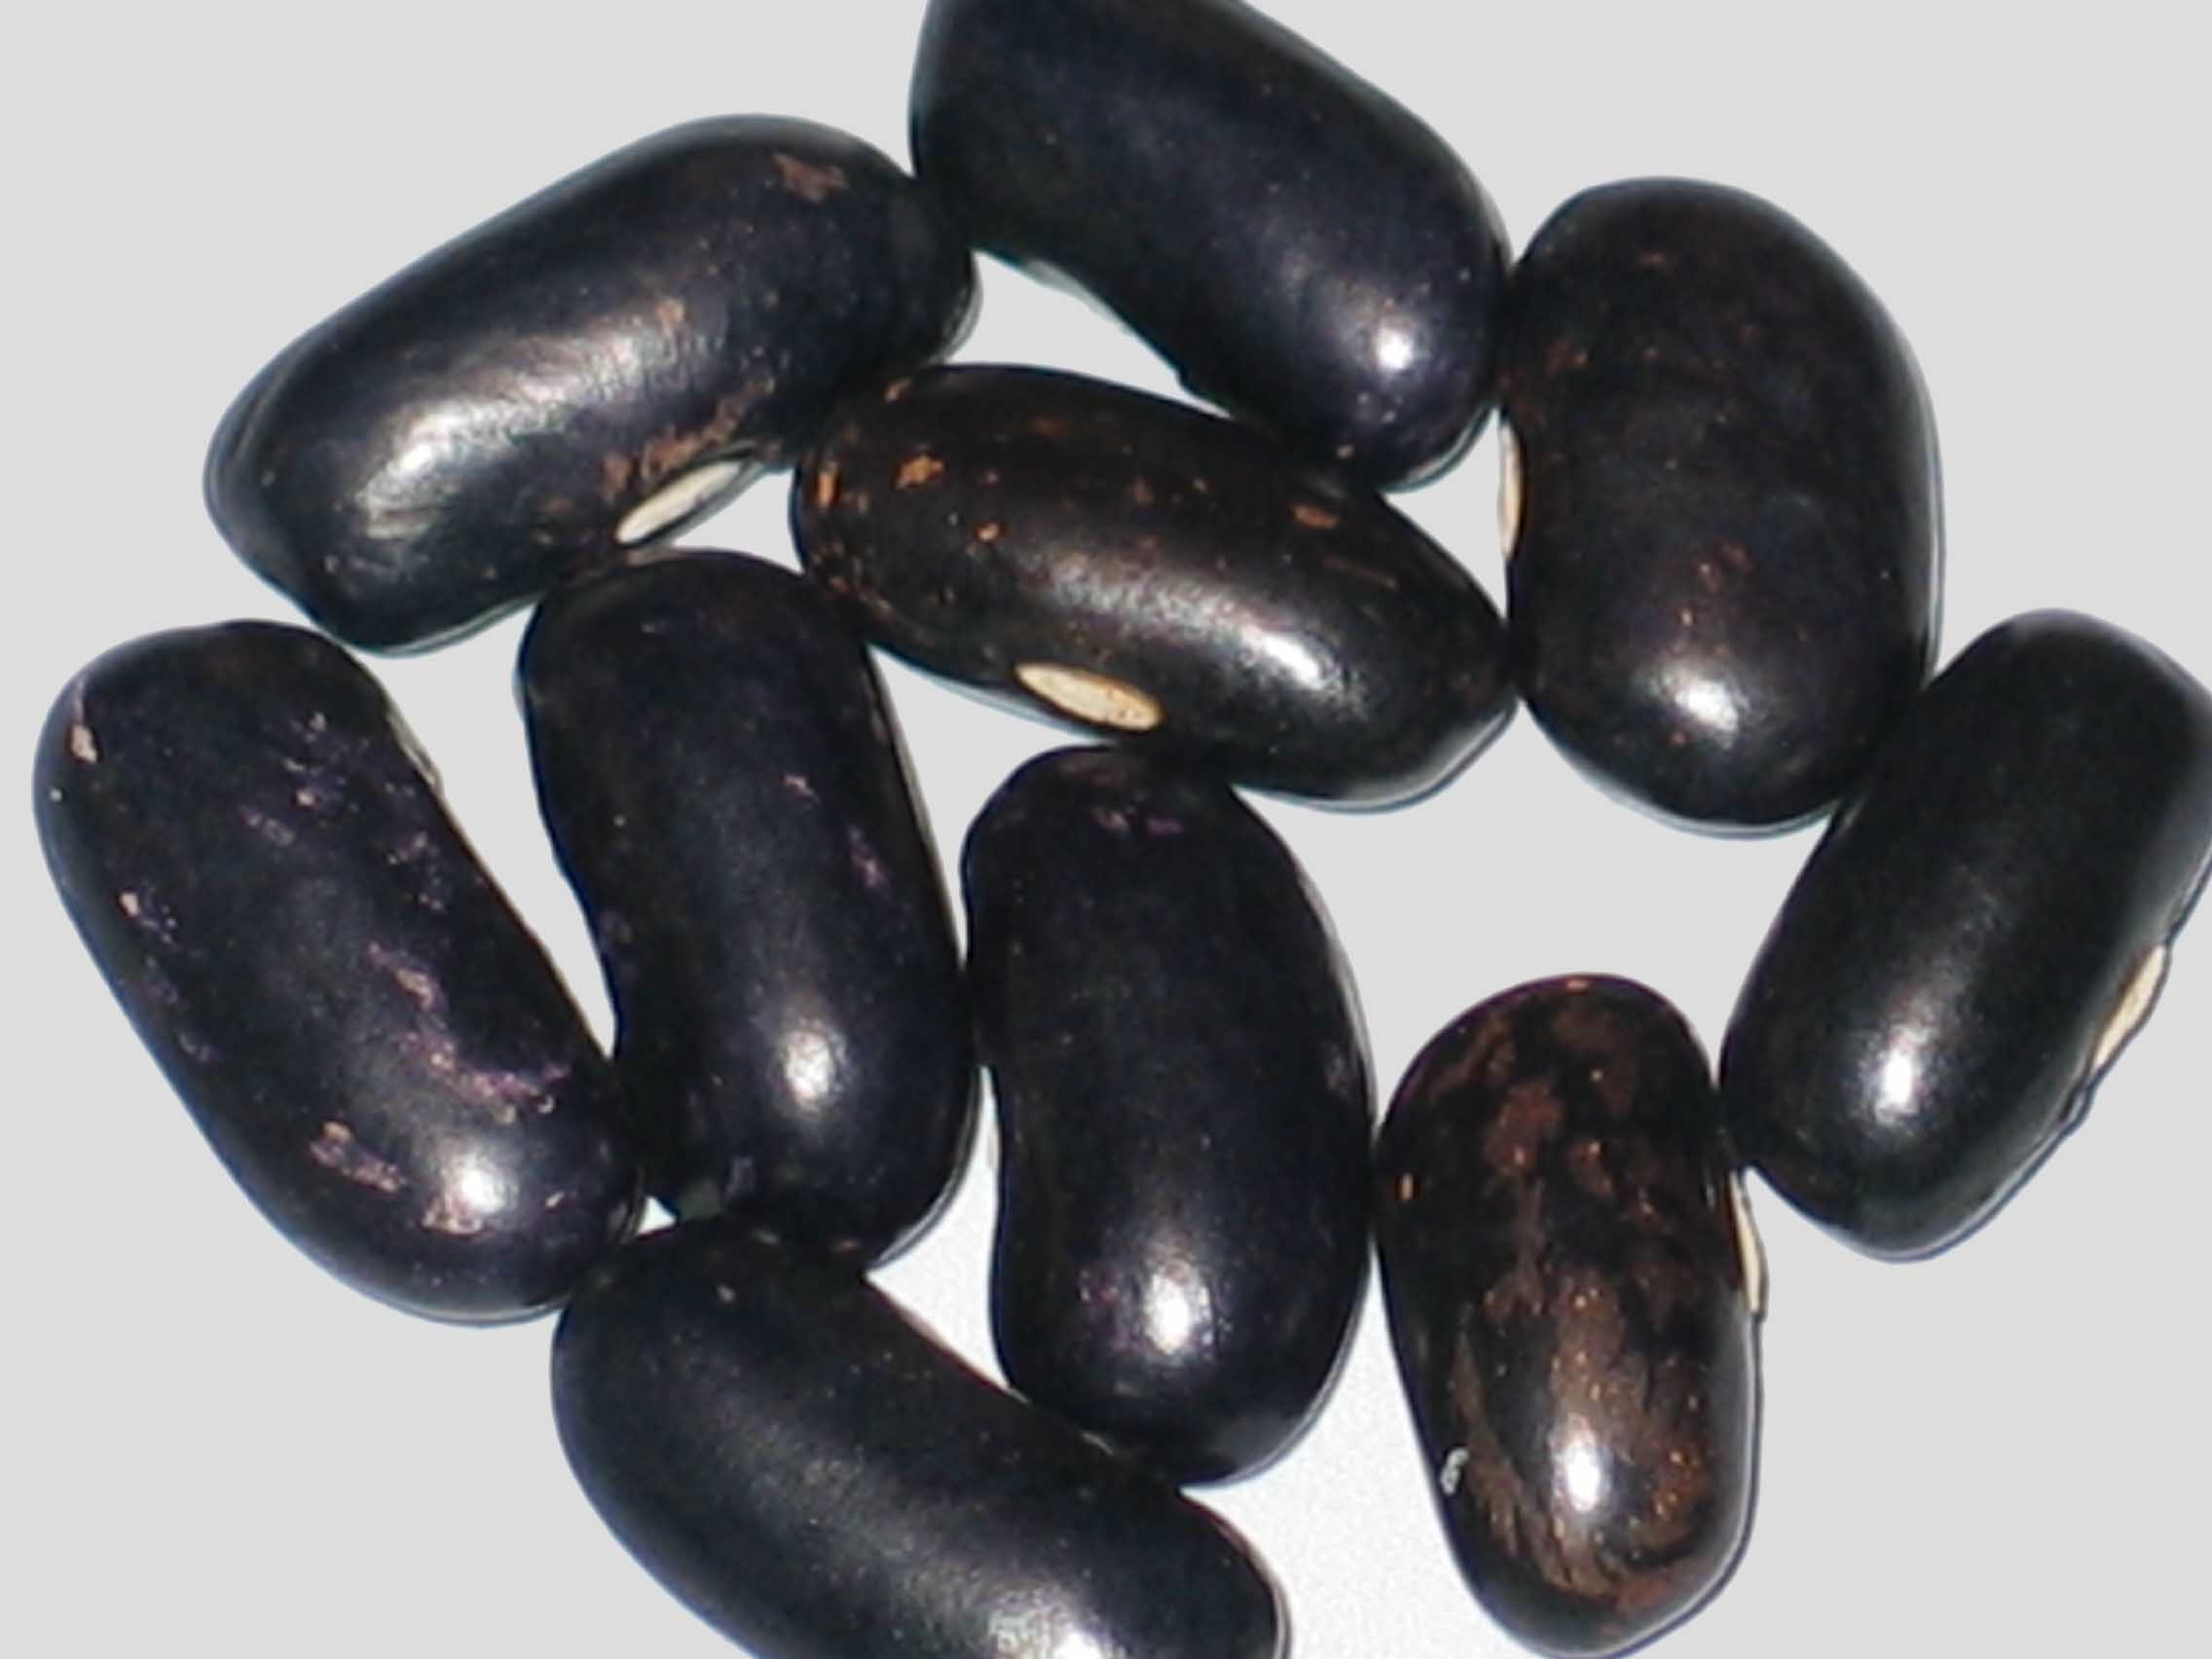 image of King's Knight beans